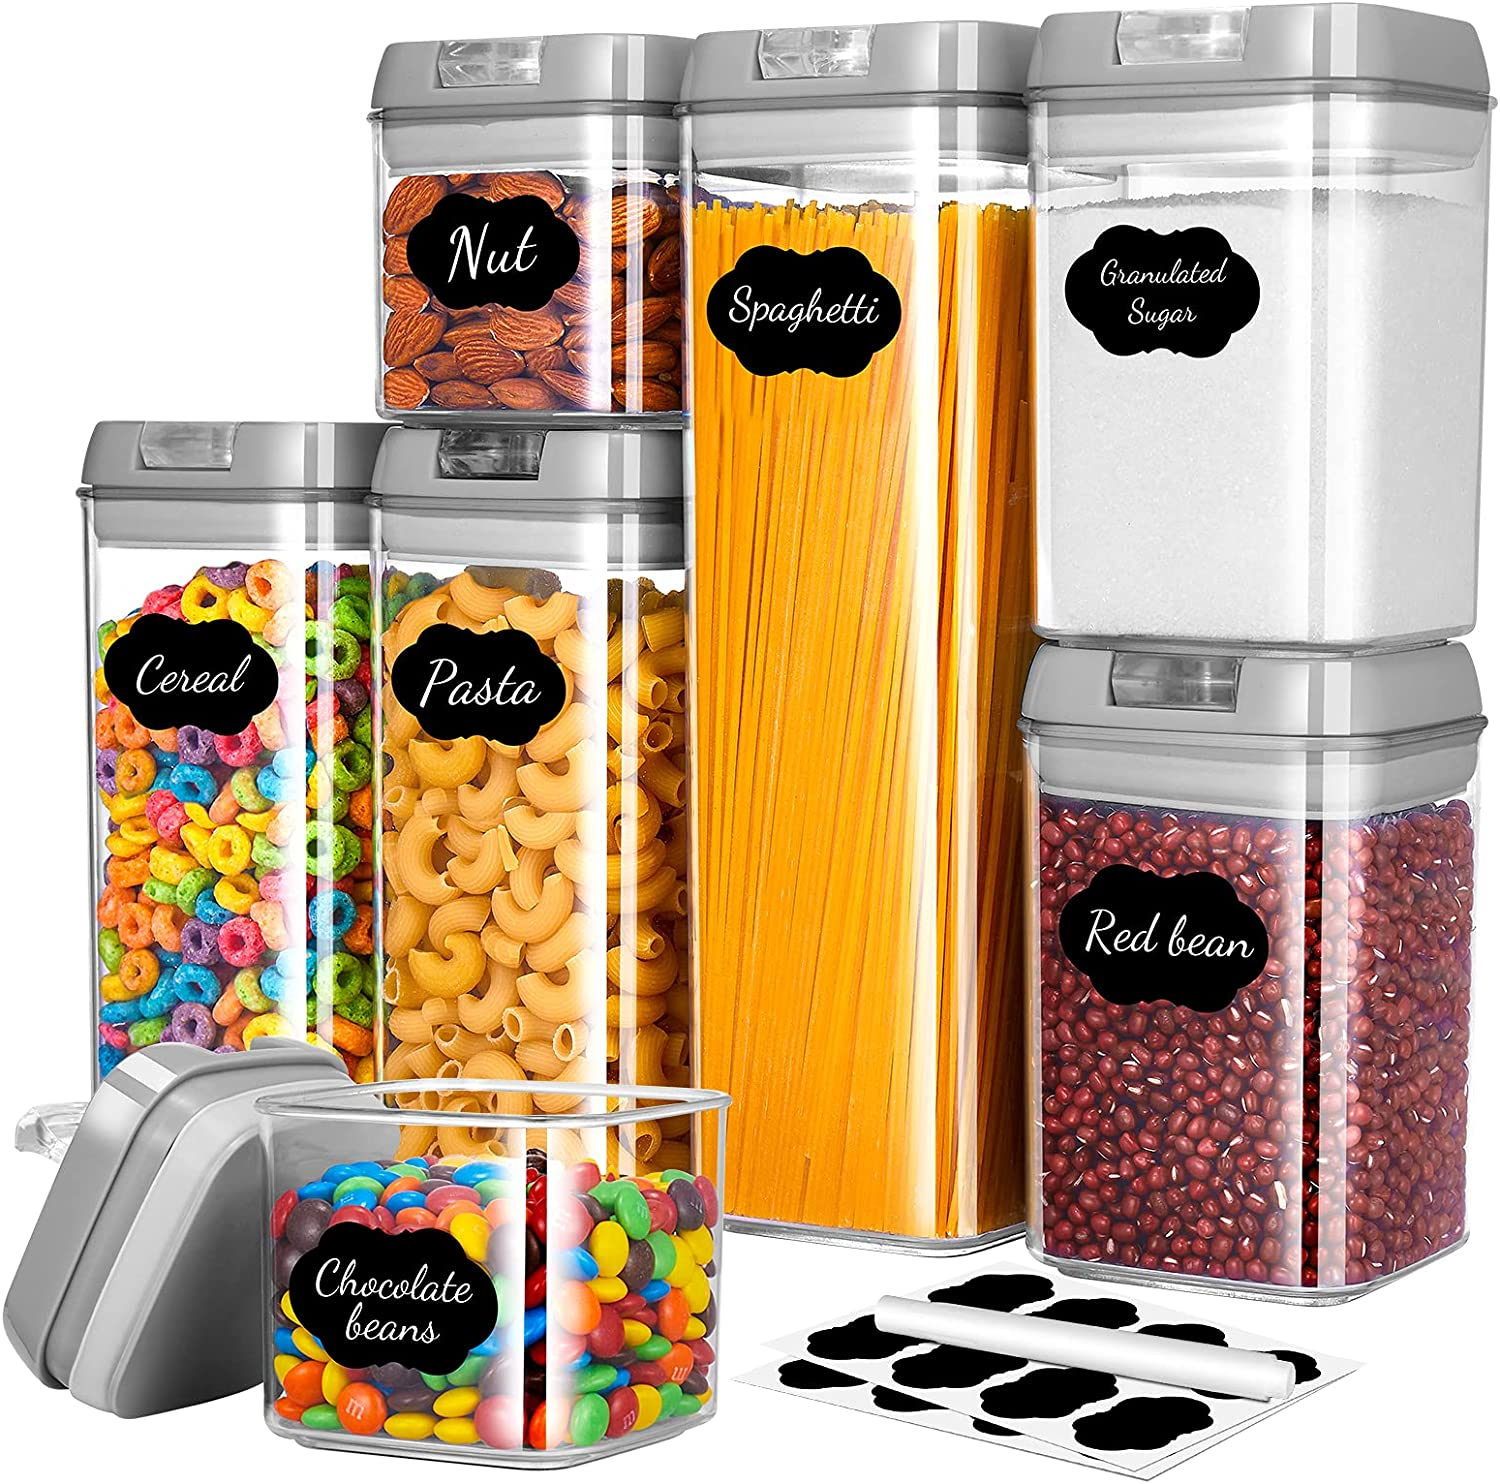 Gesentur Airtight Food Storage Containers with Lids, 7 Pack Plastic Cereal Containers Set for Kitchen Pantry Organization, BPA-Free Clear Storage Canisters with Chalkboard Labels & Pen